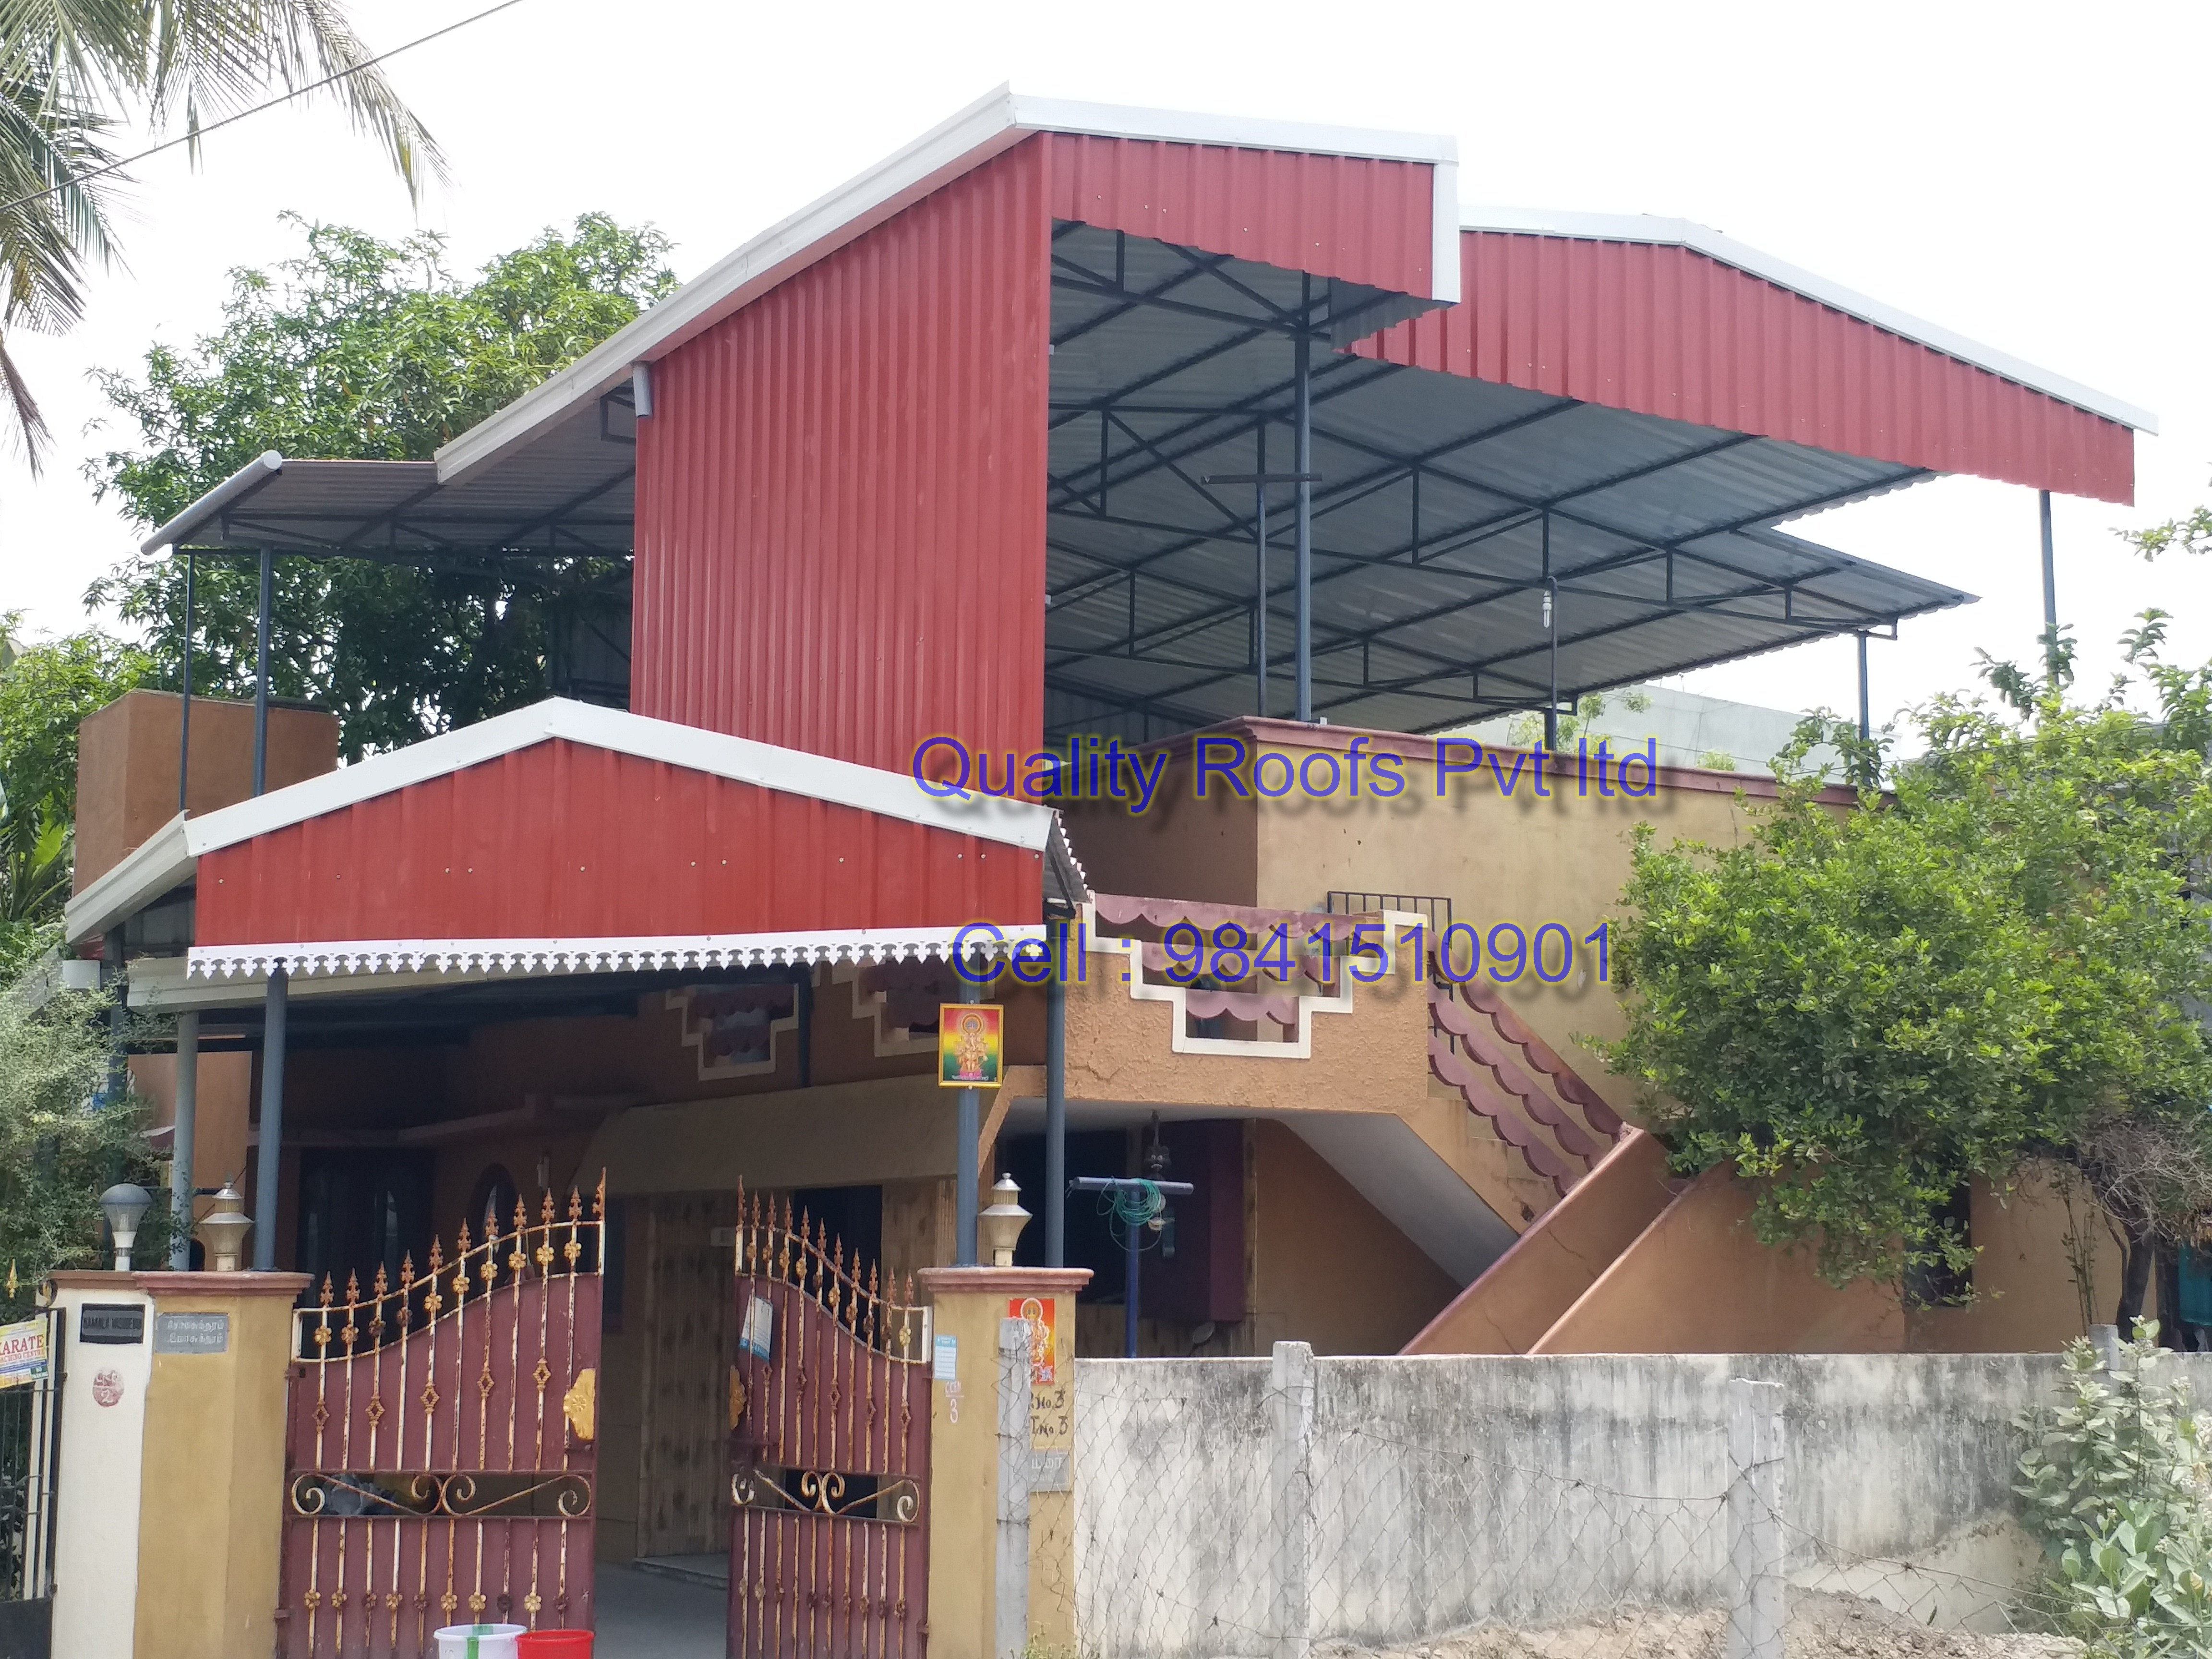 Quality Roofs Pvt Ltd, Roofing Services In Chennai, Roofing Shed Work In Chennai, Roofing Contractors Team In Chennai, Roofing Solution In Chennai, Roofing In Chennai